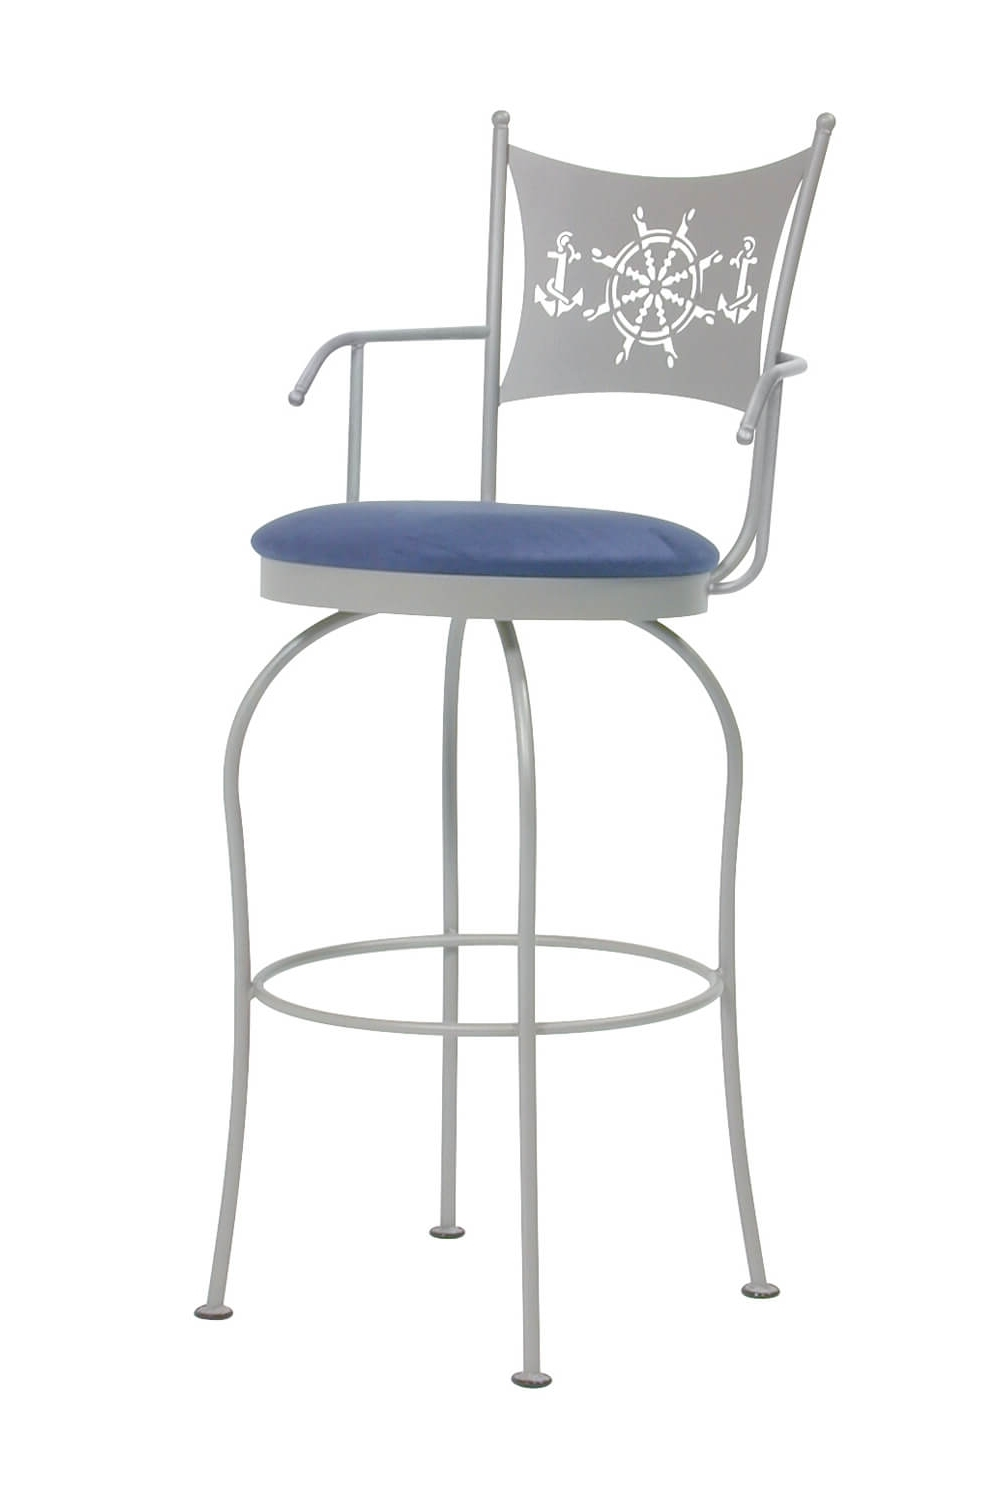 2018 Trica Art Collection Swivel Stool W/ Arms, Nature, Nautical Theme Intended For Nautical Silver Side Chairs (View 13 of 20)